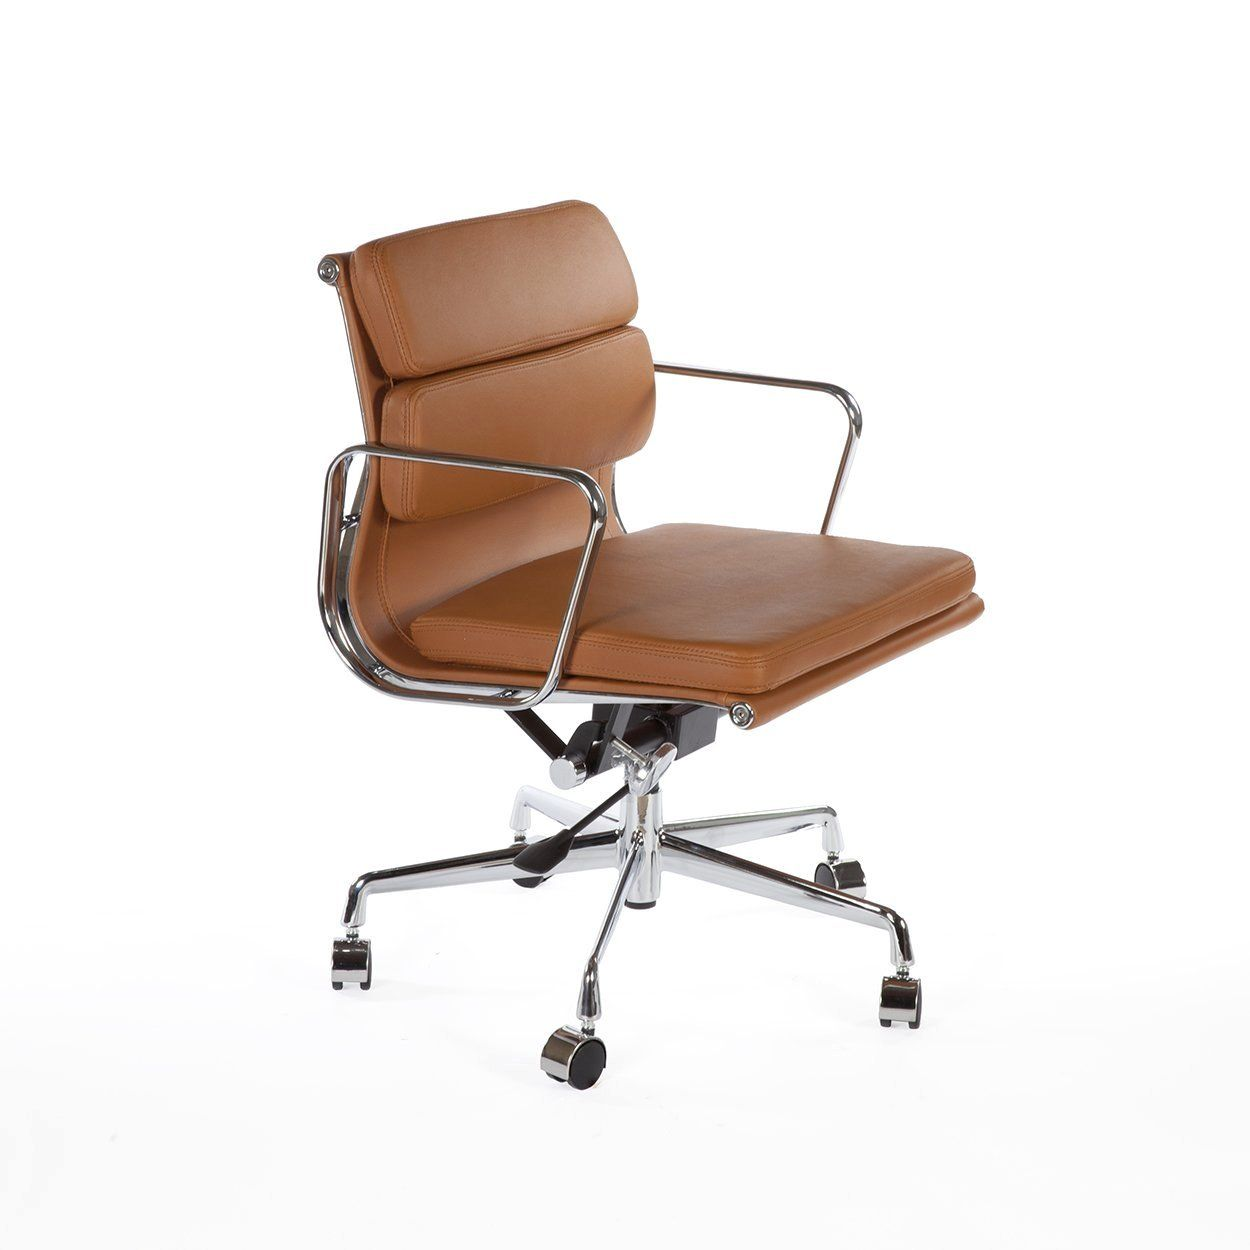 Mid Century Low Back Polstret Office Chair Brown Mid Century Modern Office Chair Modern Desk Chair Mid Century Modern Desk Chair